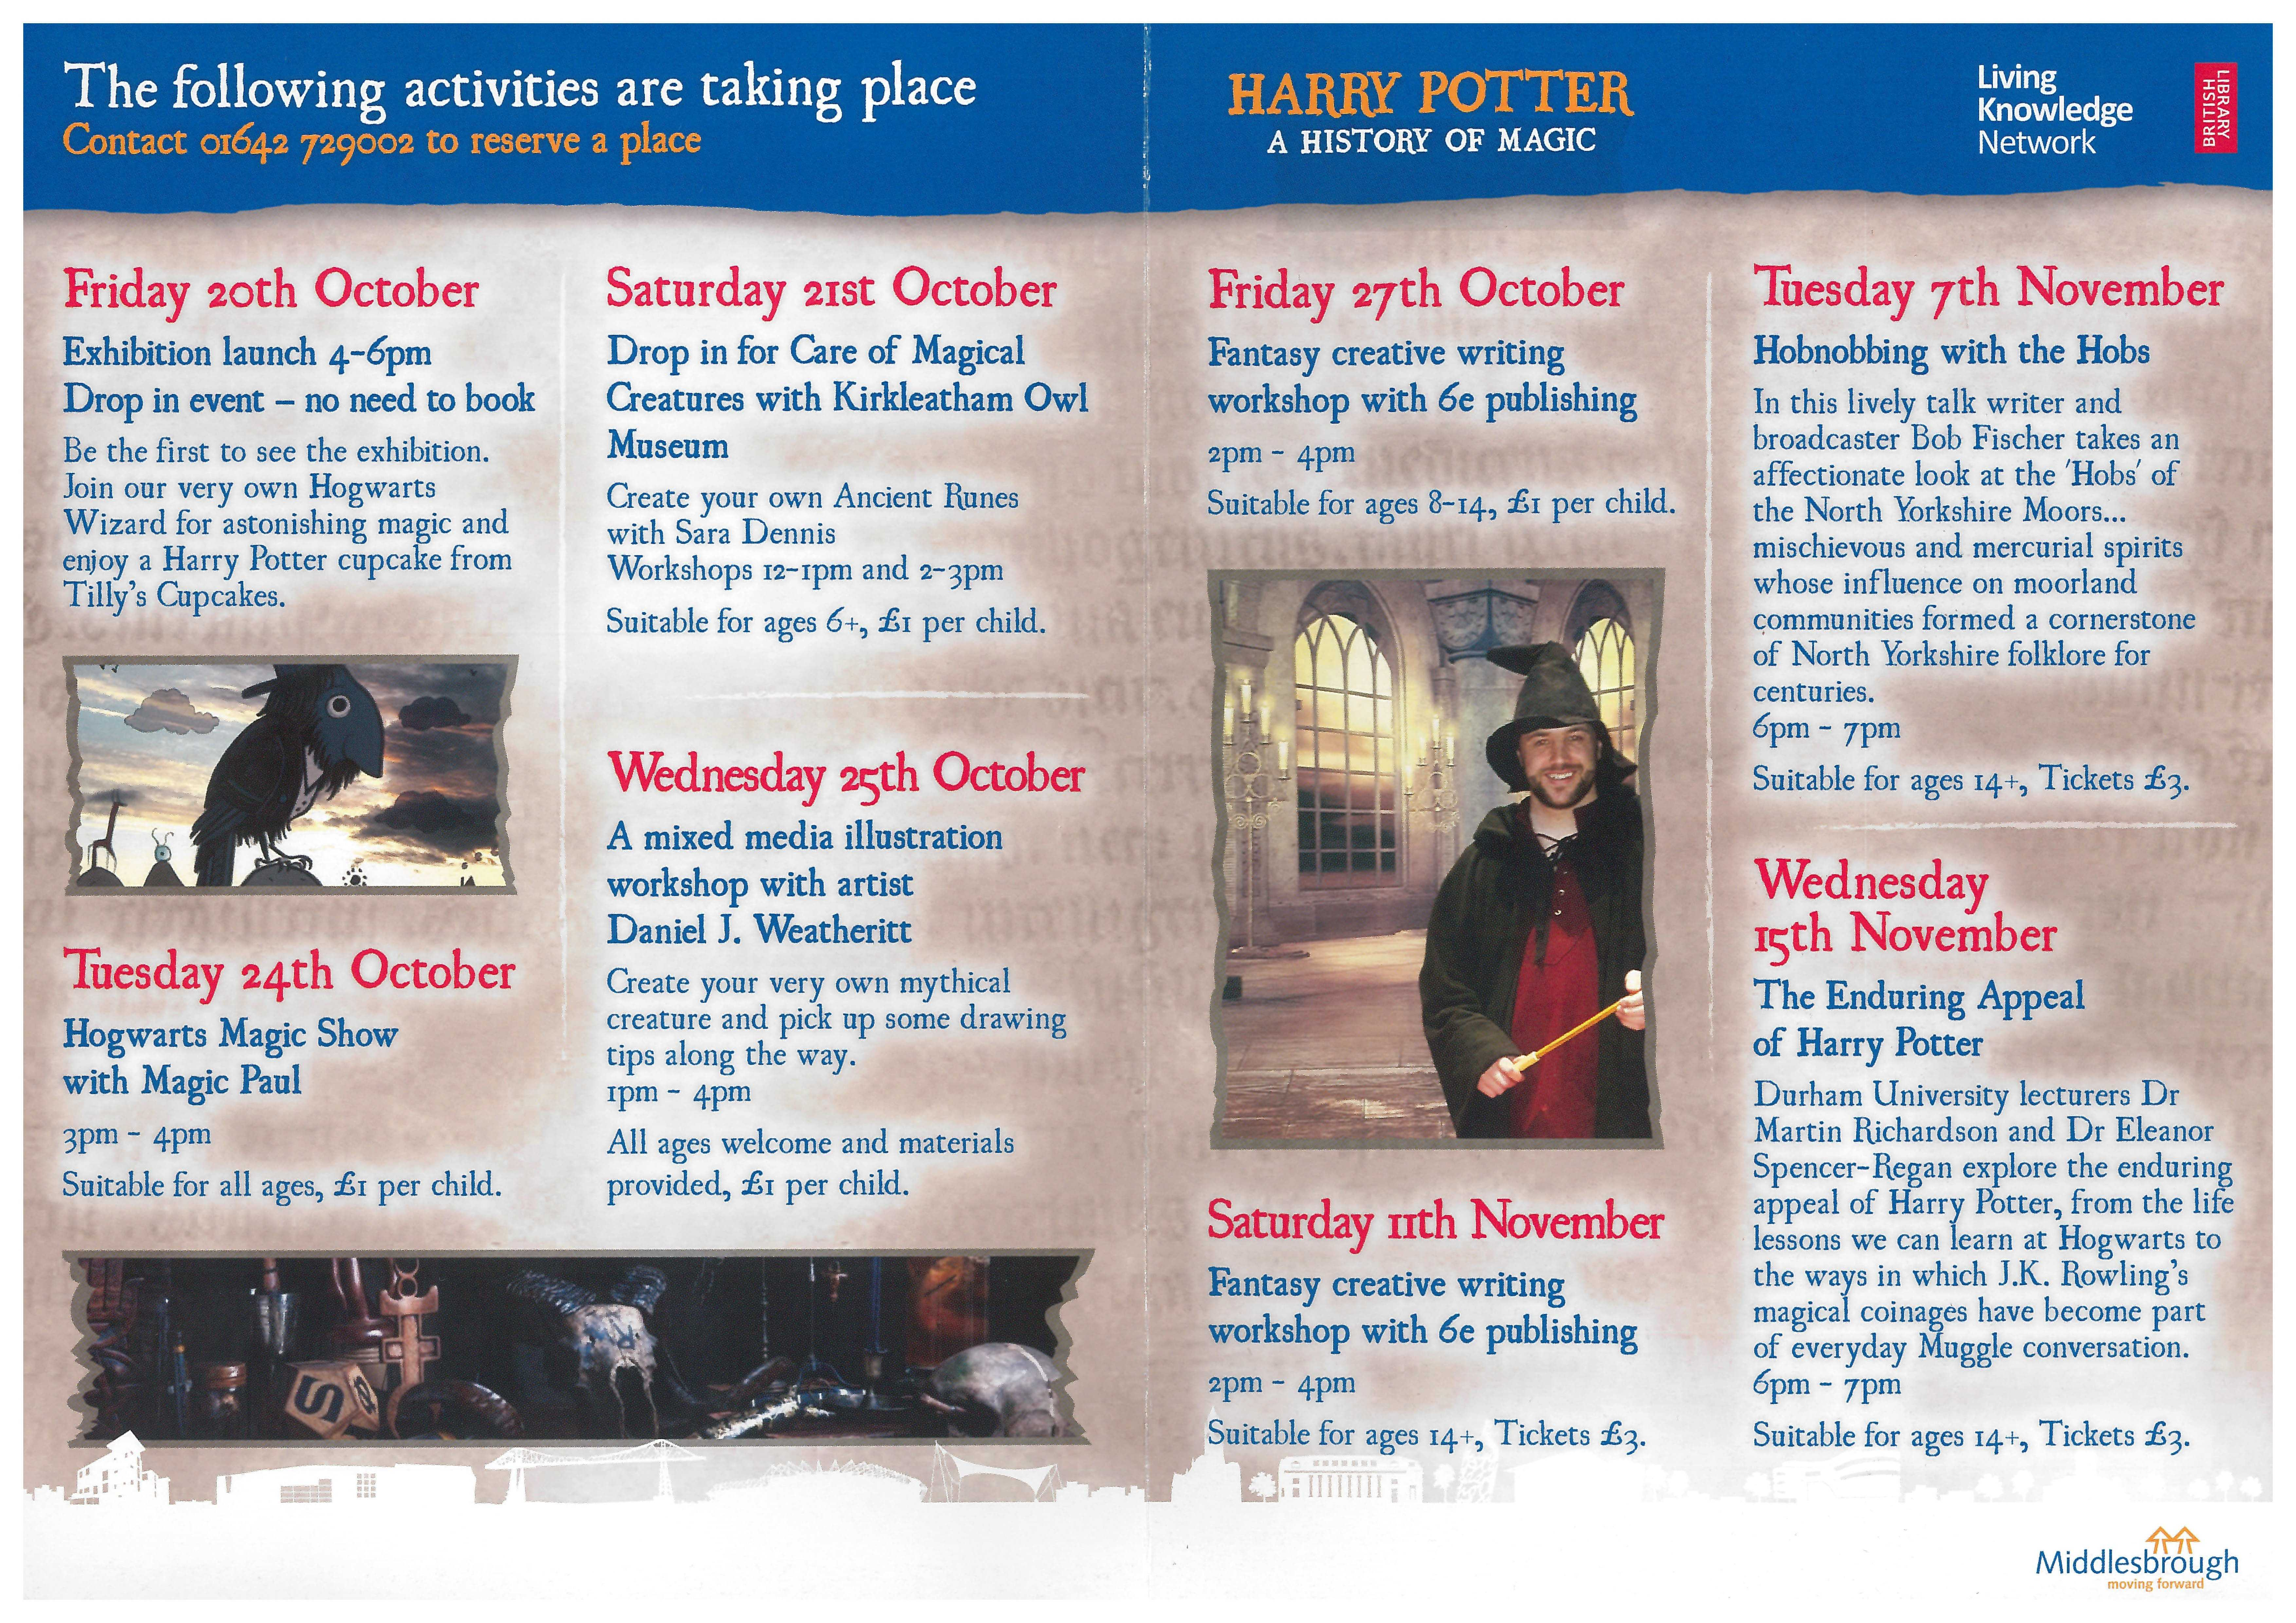 Harry Potter events